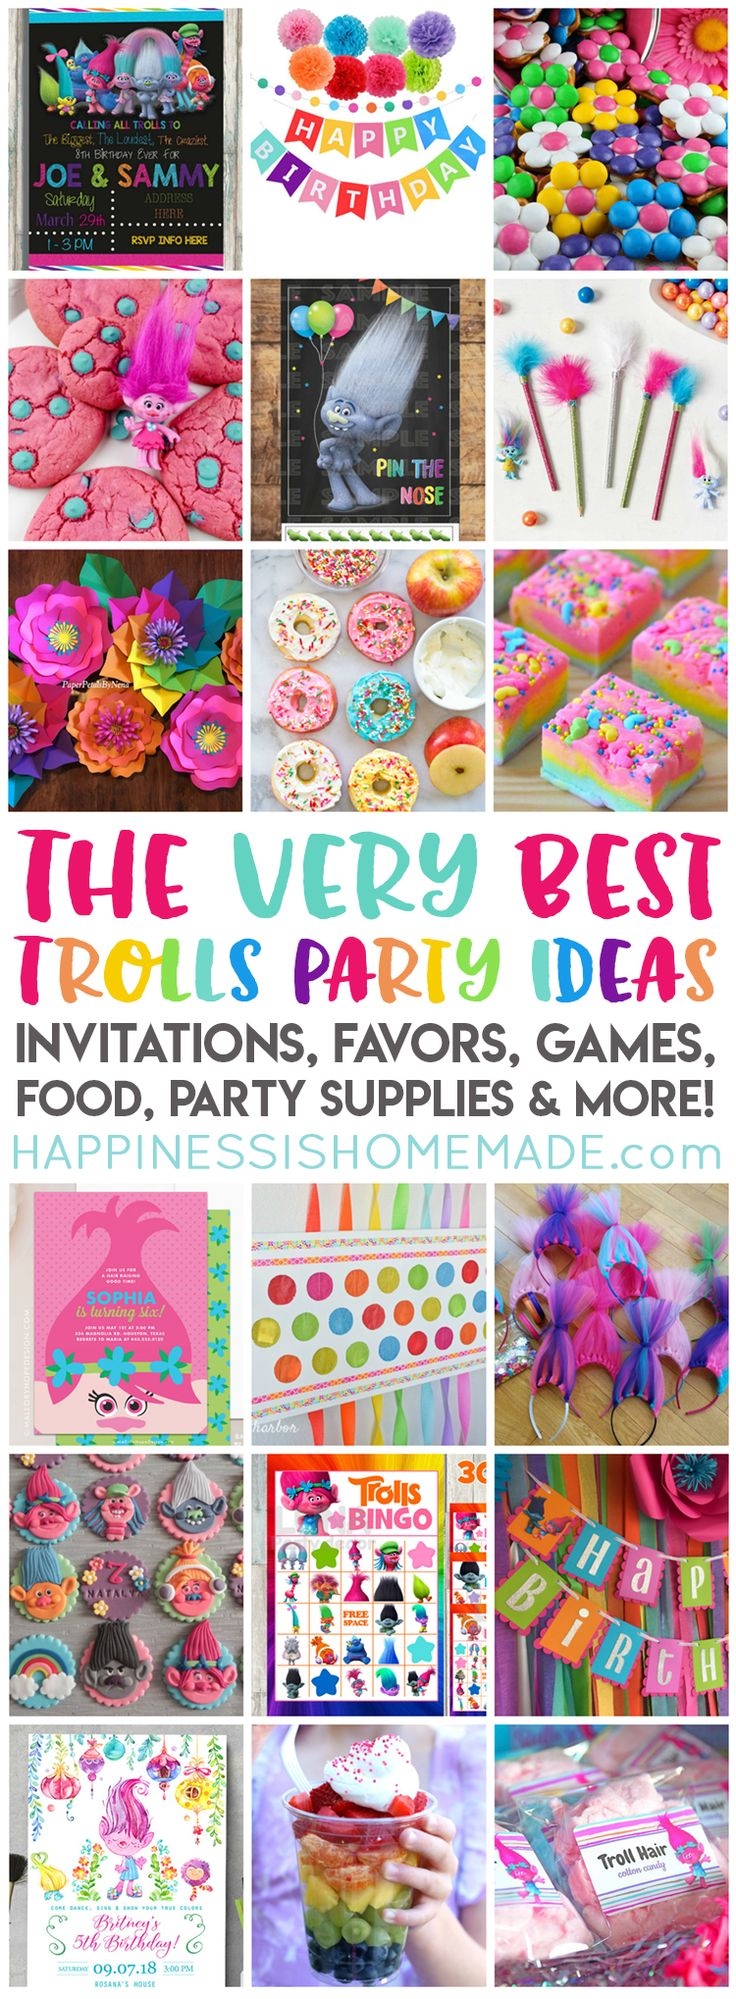 Planning a Trolls Birthday Party? We've got you covered with the best Trolls Party Ideas - Trolls party supplies, party favors, invitations, decorations, games, and more! We make your party planning easy peasy!  via @hiHomemadeBlog